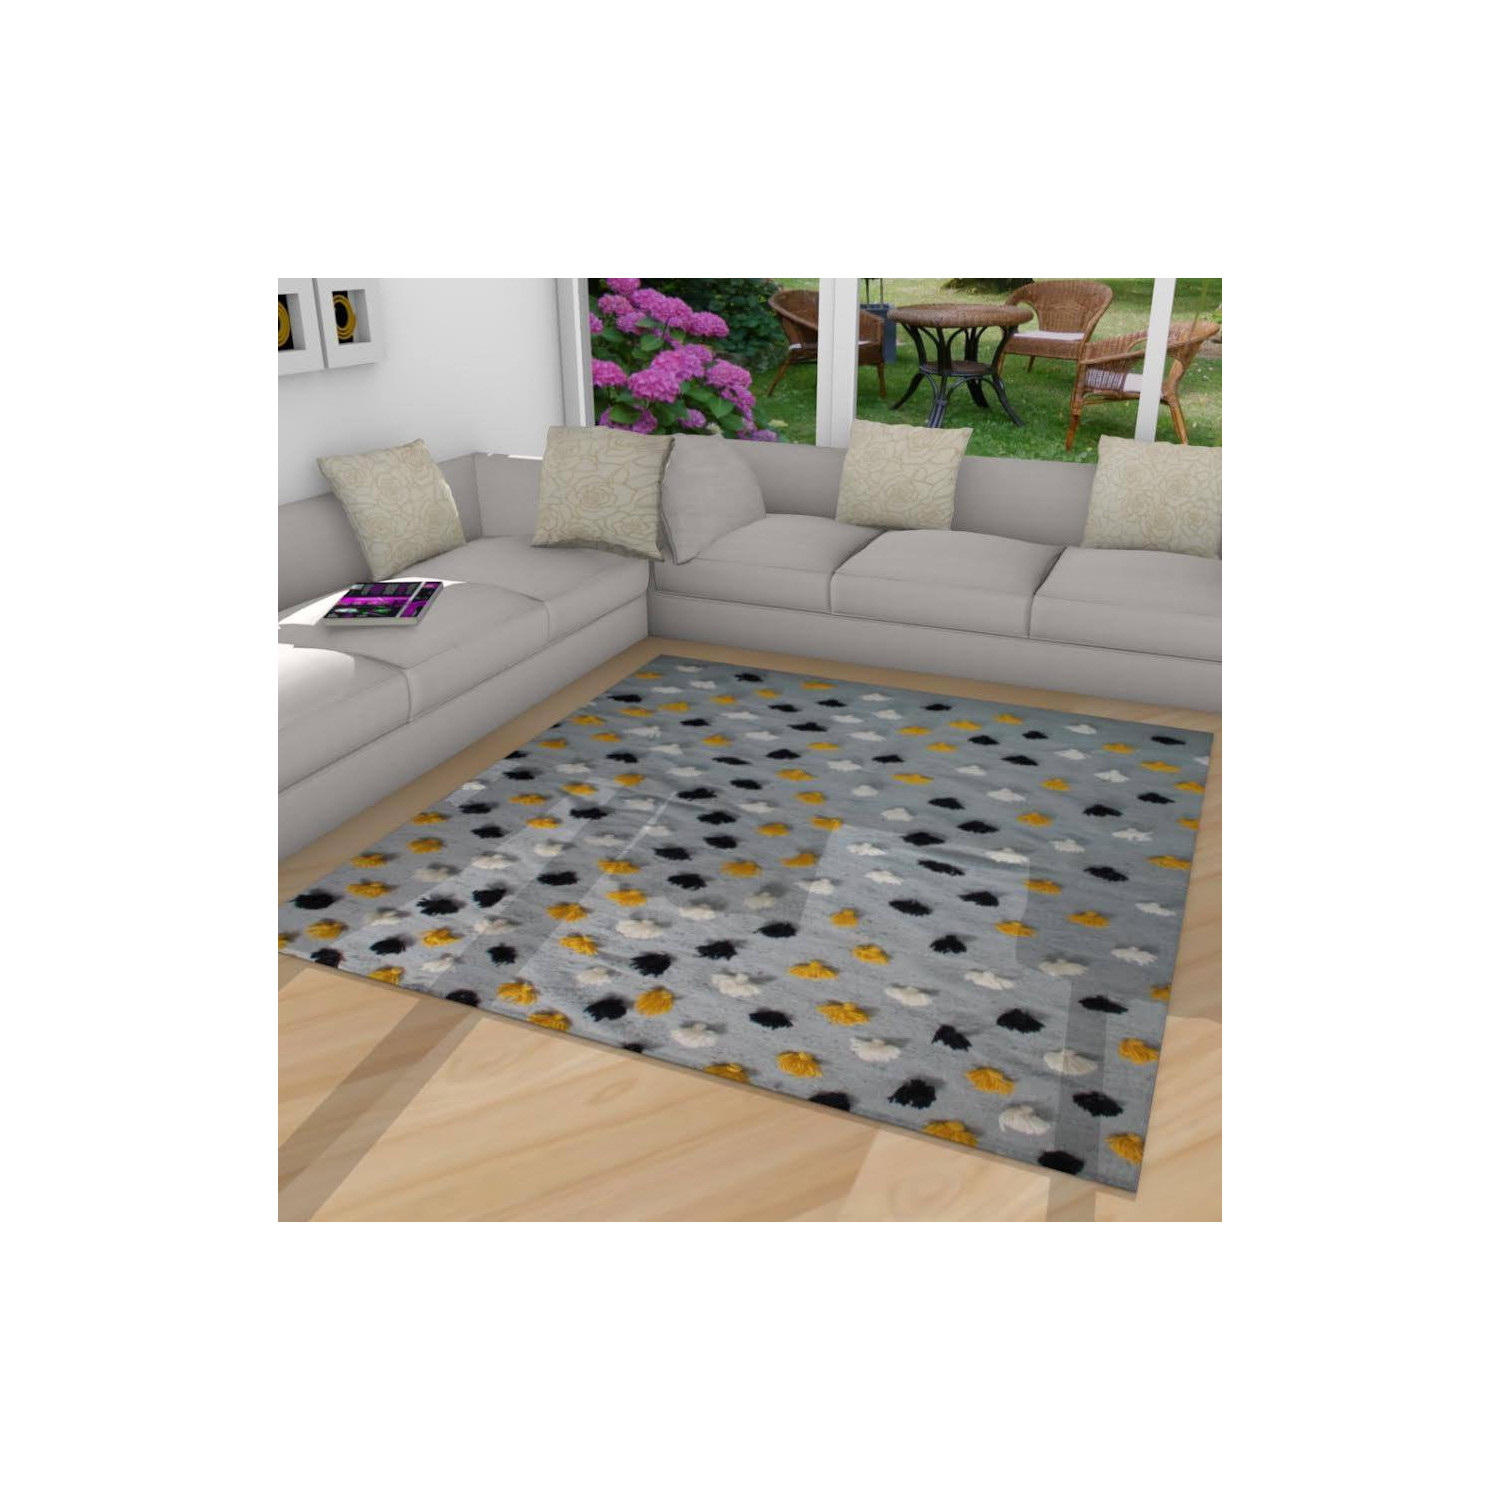 tapis gris violet tapis reflective marque arte espina sur. Black Bedroom Furniture Sets. Home Design Ideas